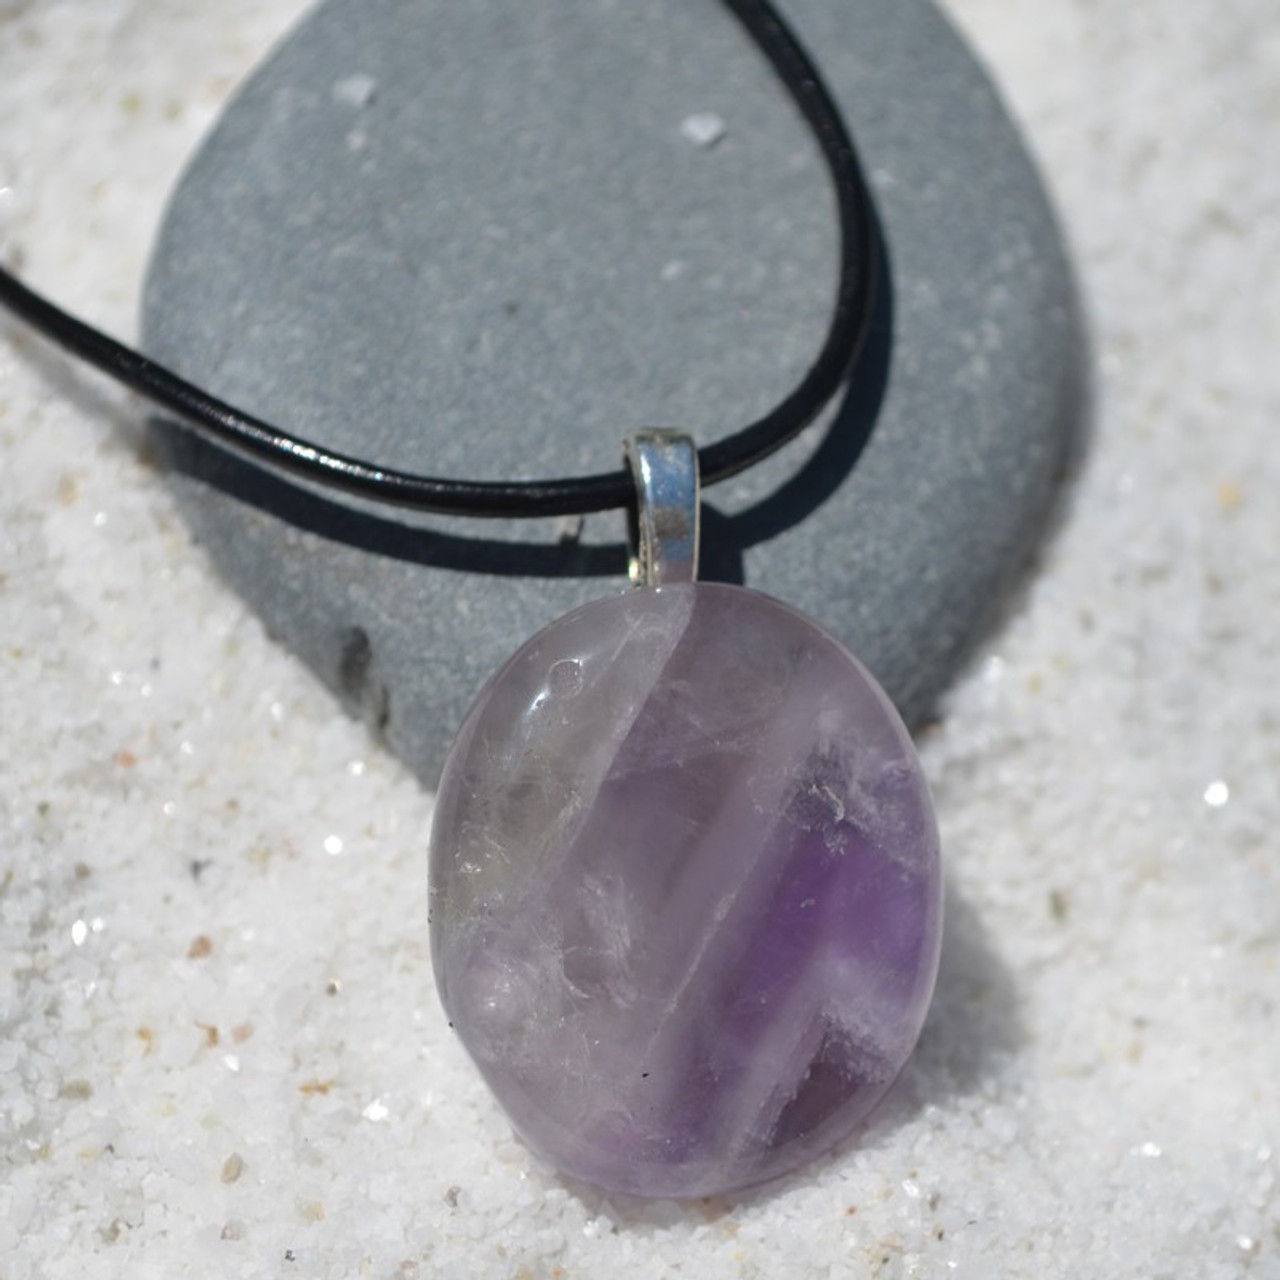 Amethyst Palm Stone on a Leather Thong Necklace - Made to Order